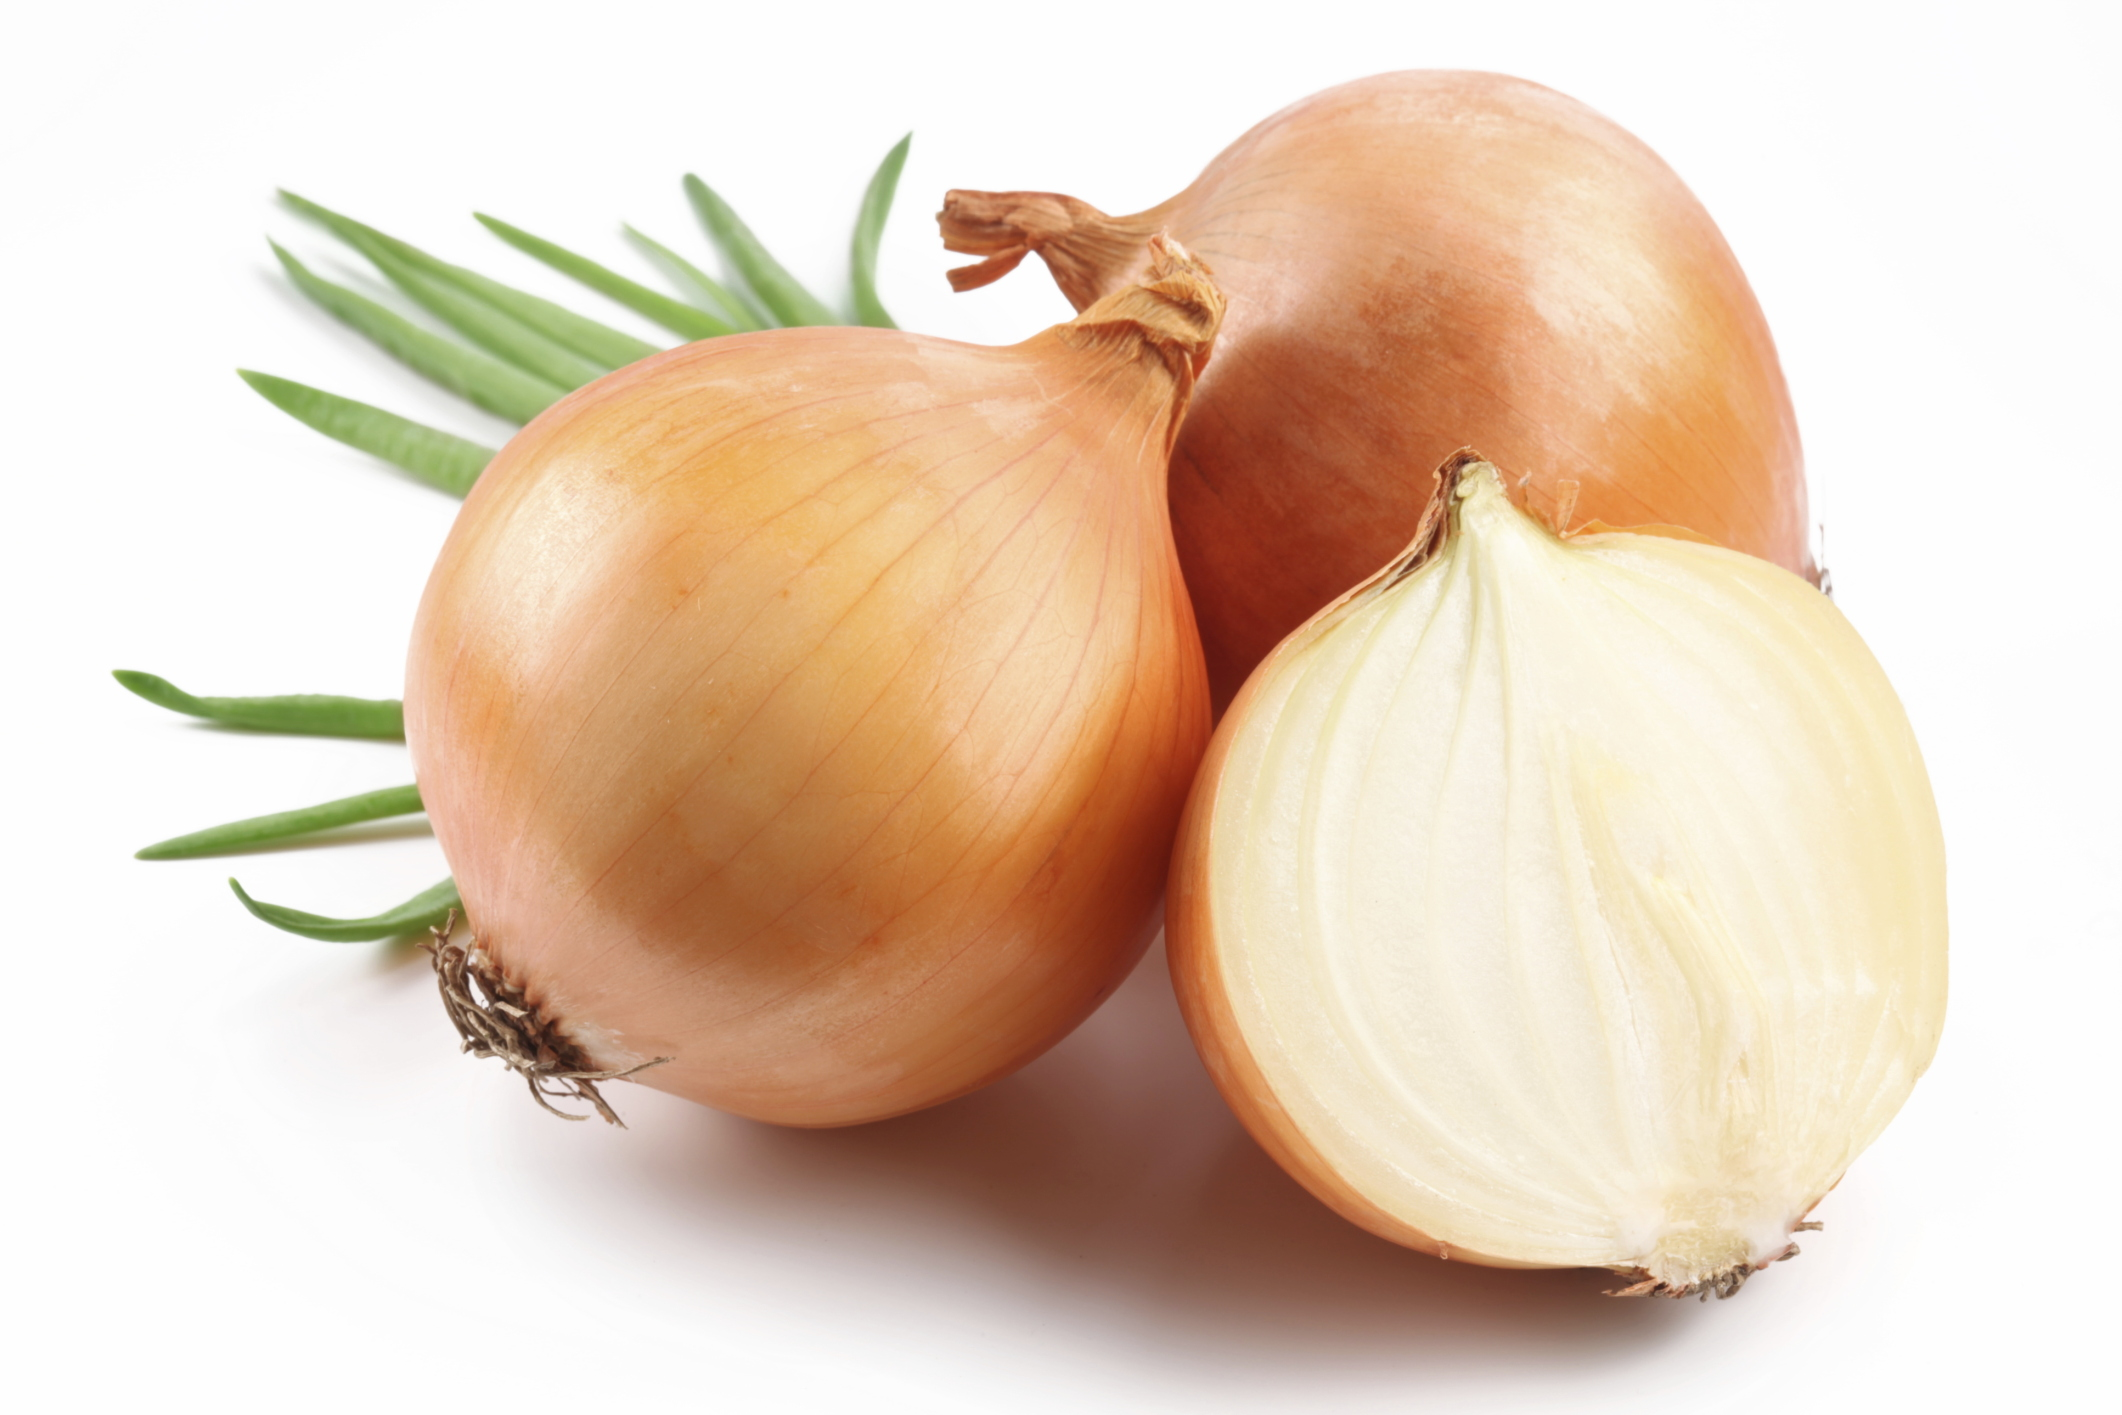 Fresh Onion in Section 238.14 Kb